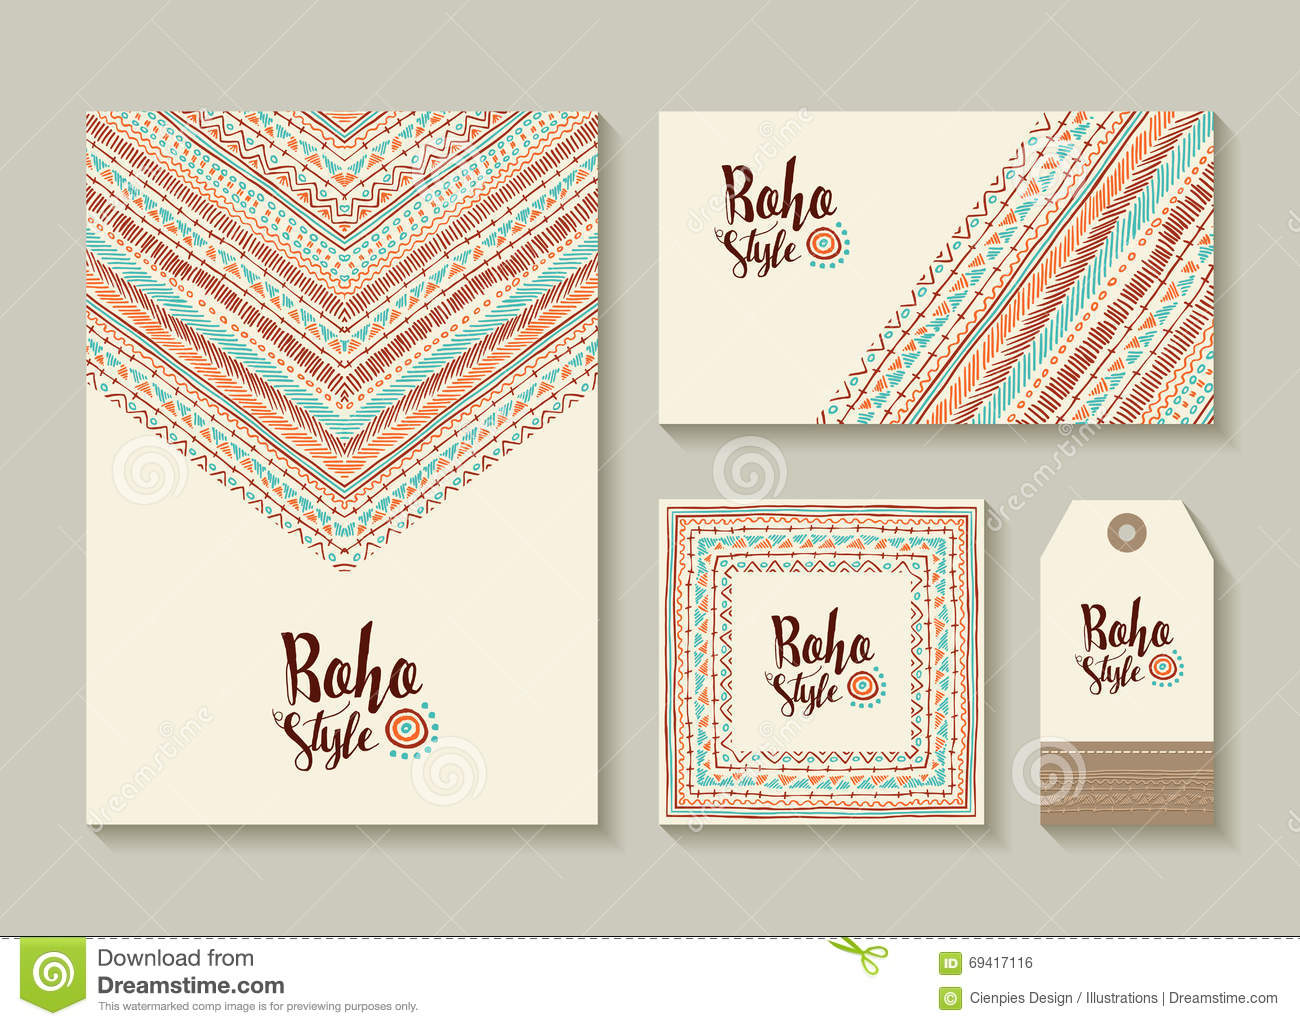 Boho Style Card And Tag Designs With Colorful Art Stock